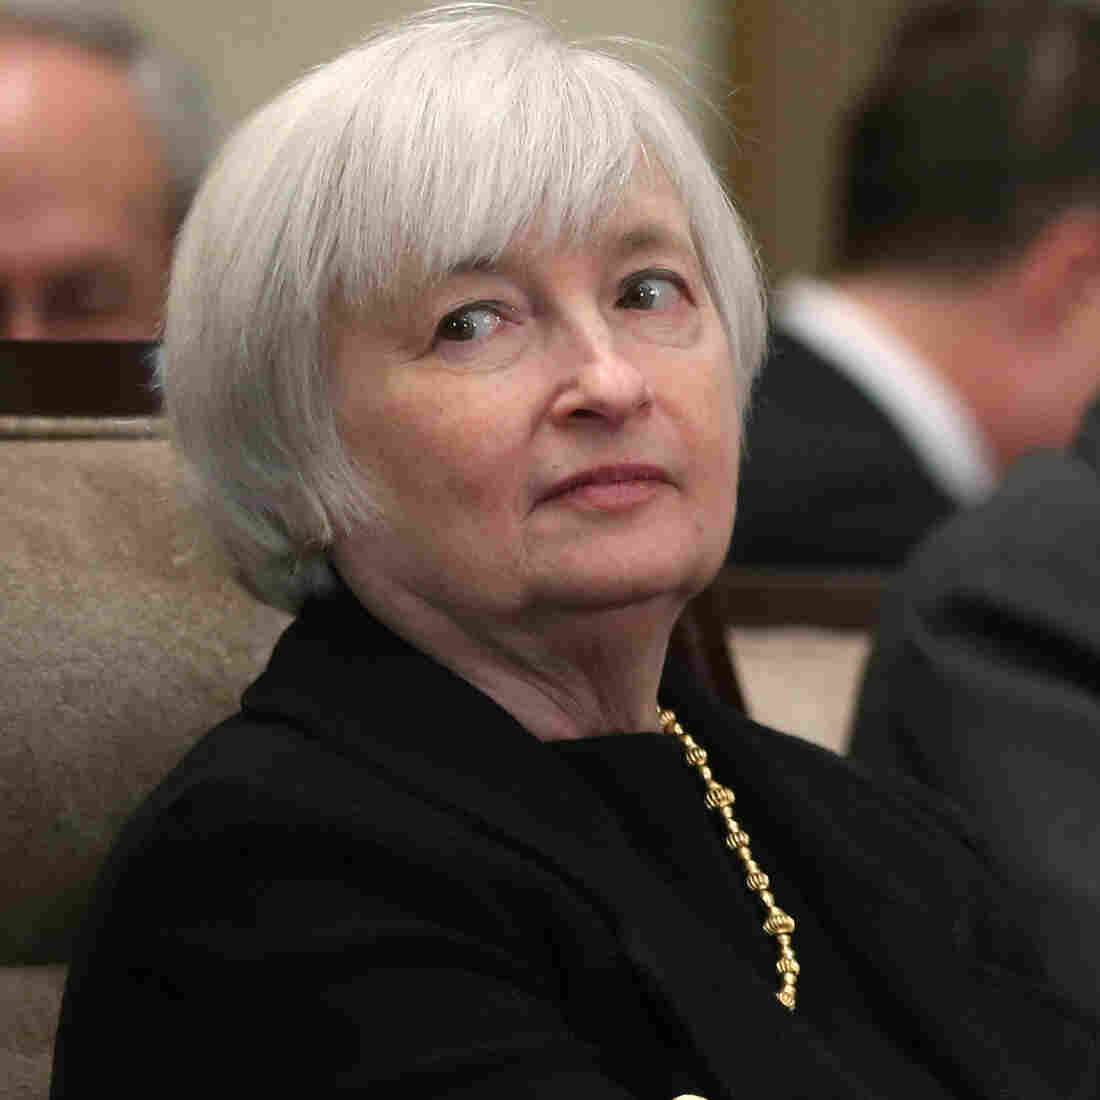 Senate Confirms Janet Yellen As Federal Reserve Chair